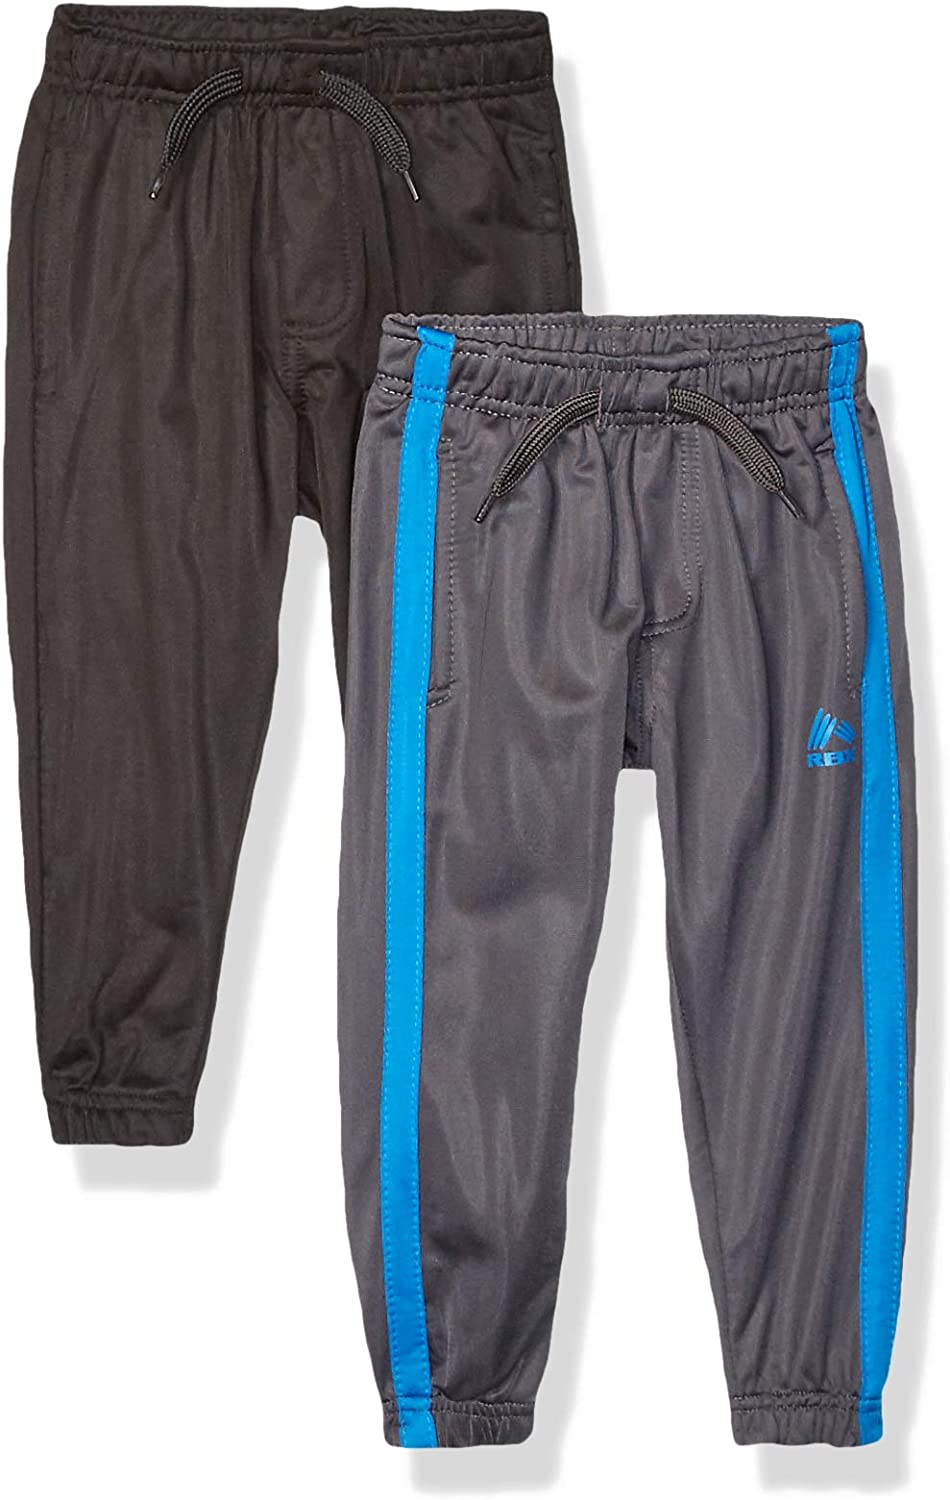 RBX Boys Big 2 Pack Tricot Pants